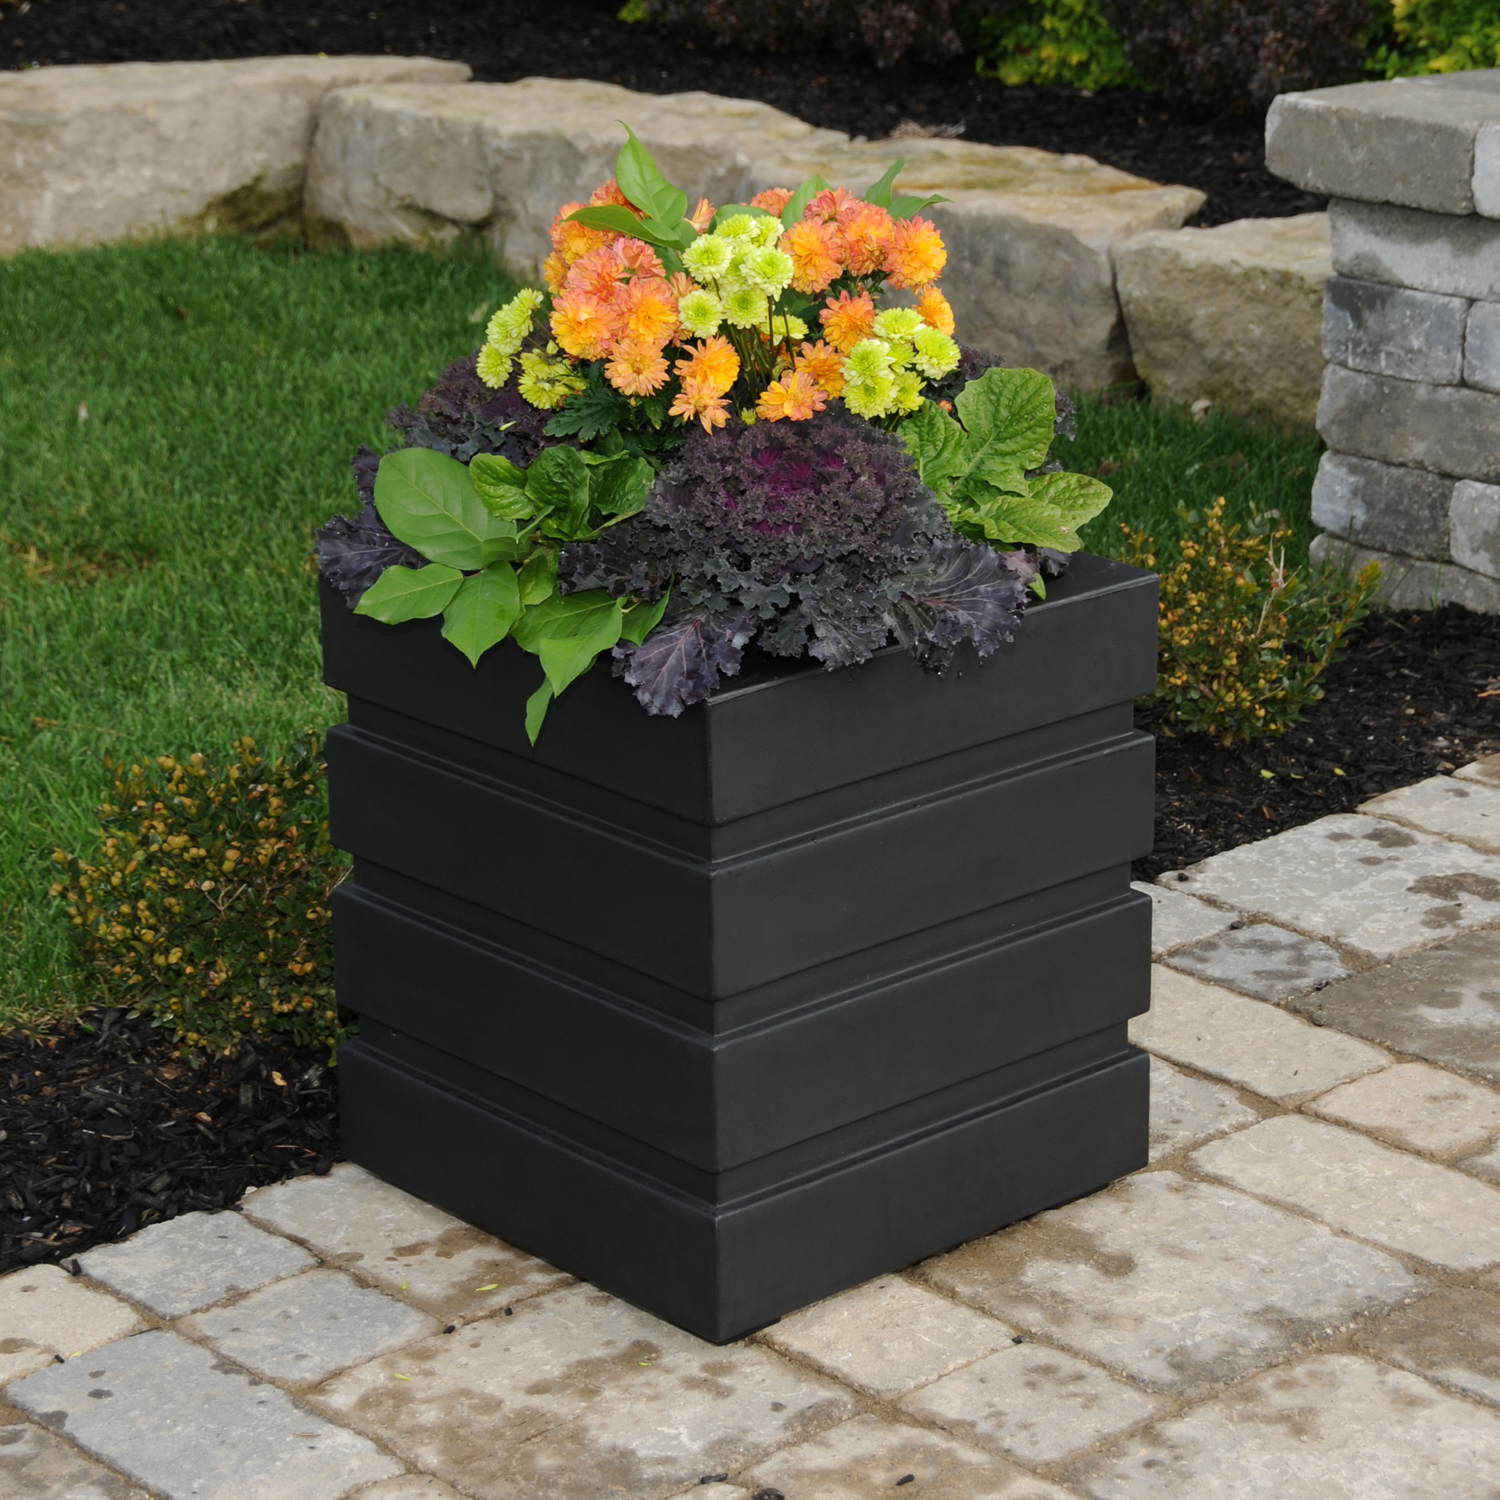 18x18 Freeport Patio Planter By Mayne In Garden Planter Boxes